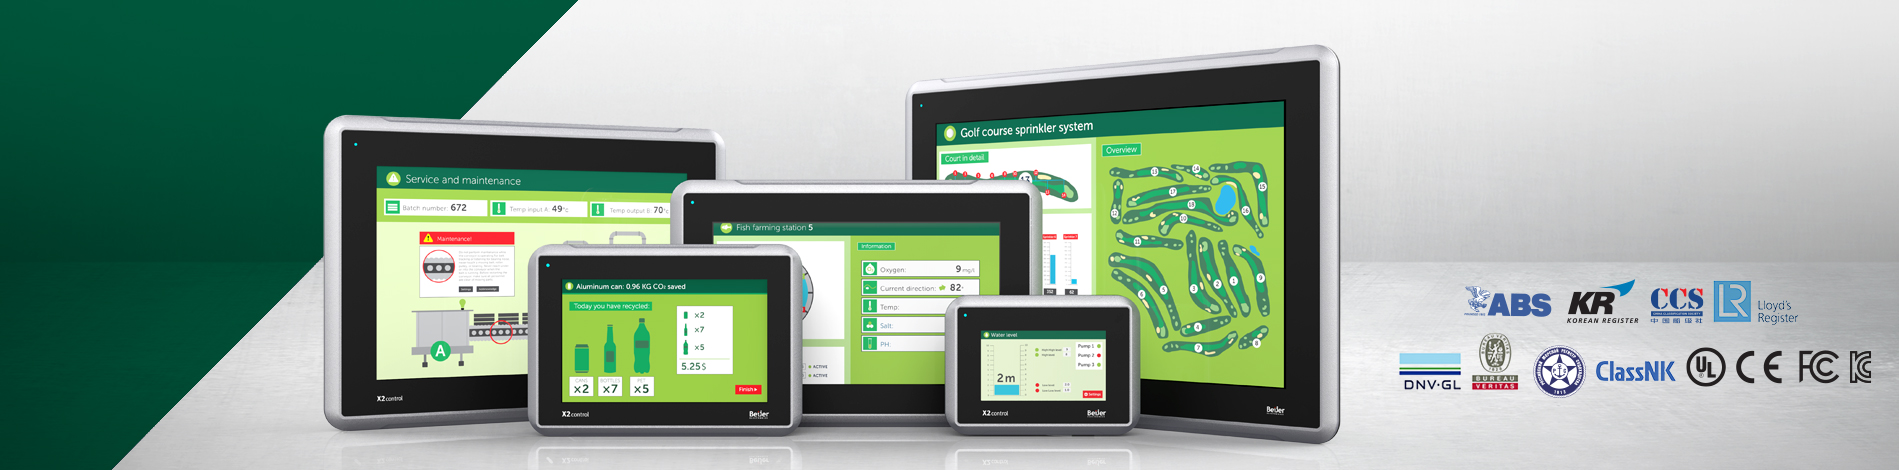 X2 control HMI with integrated Codesys control